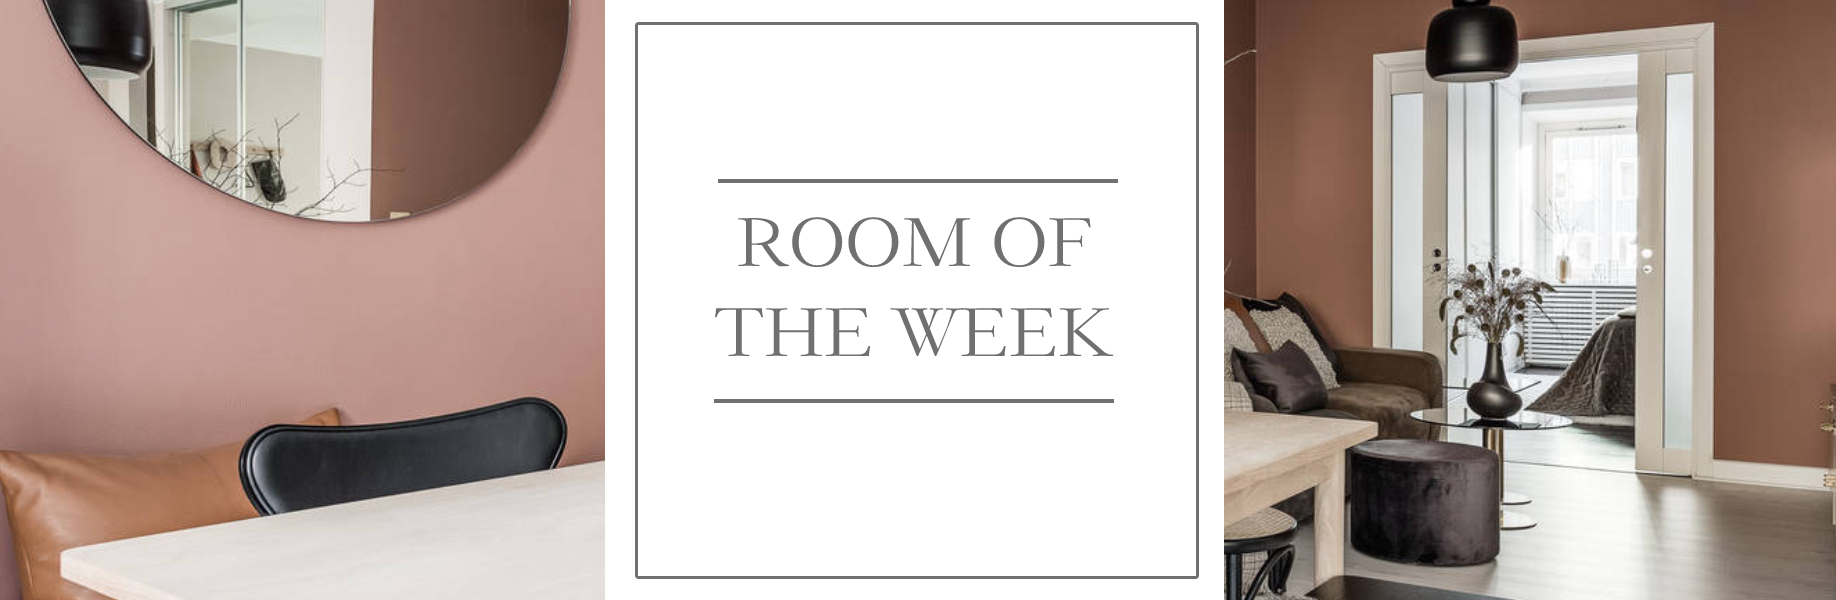 room of the week